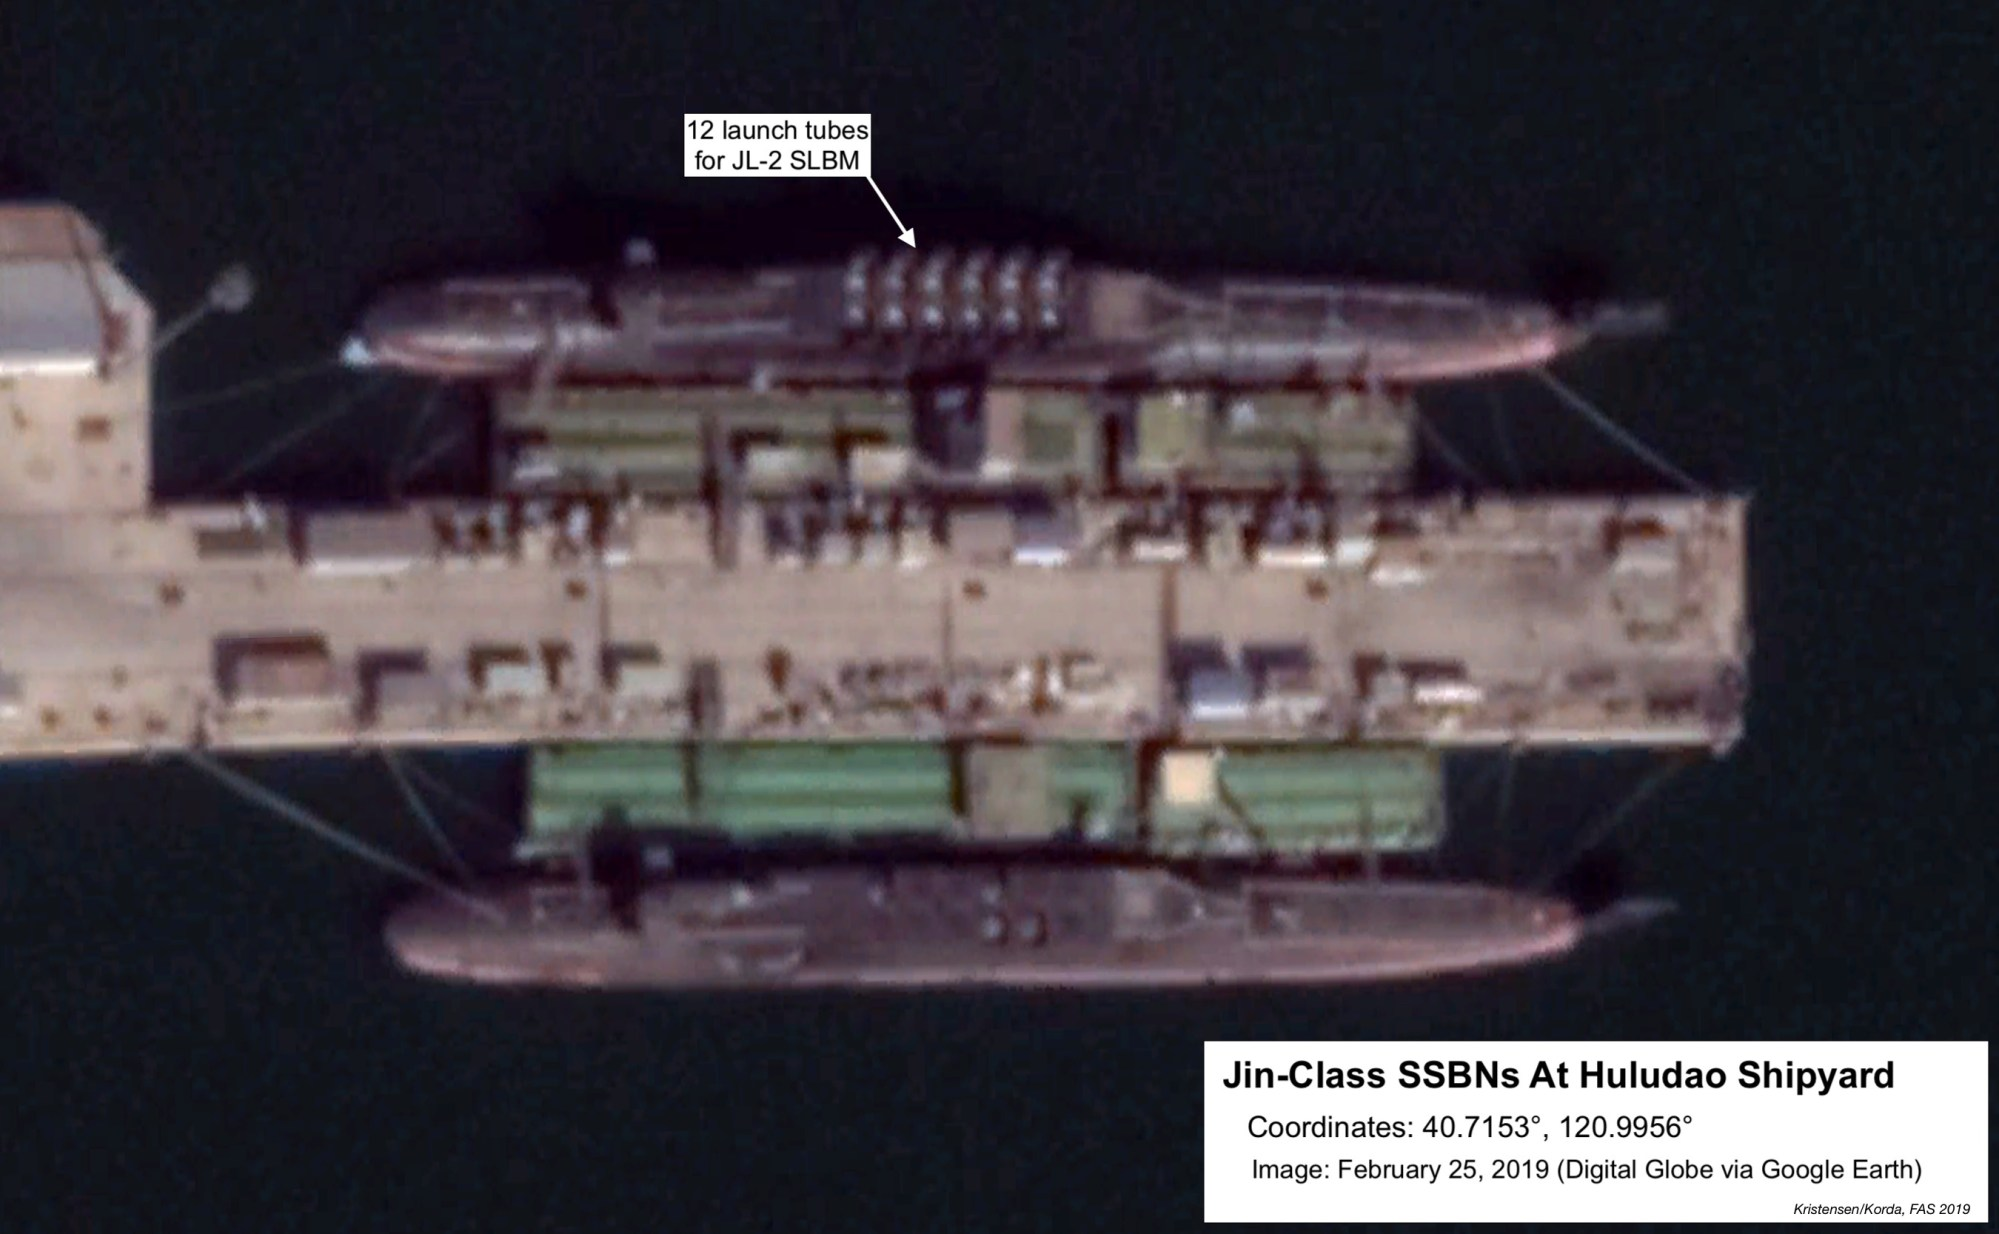 hight resolution of china is increasing its ballistic missile submarine fleet click on image to view full size